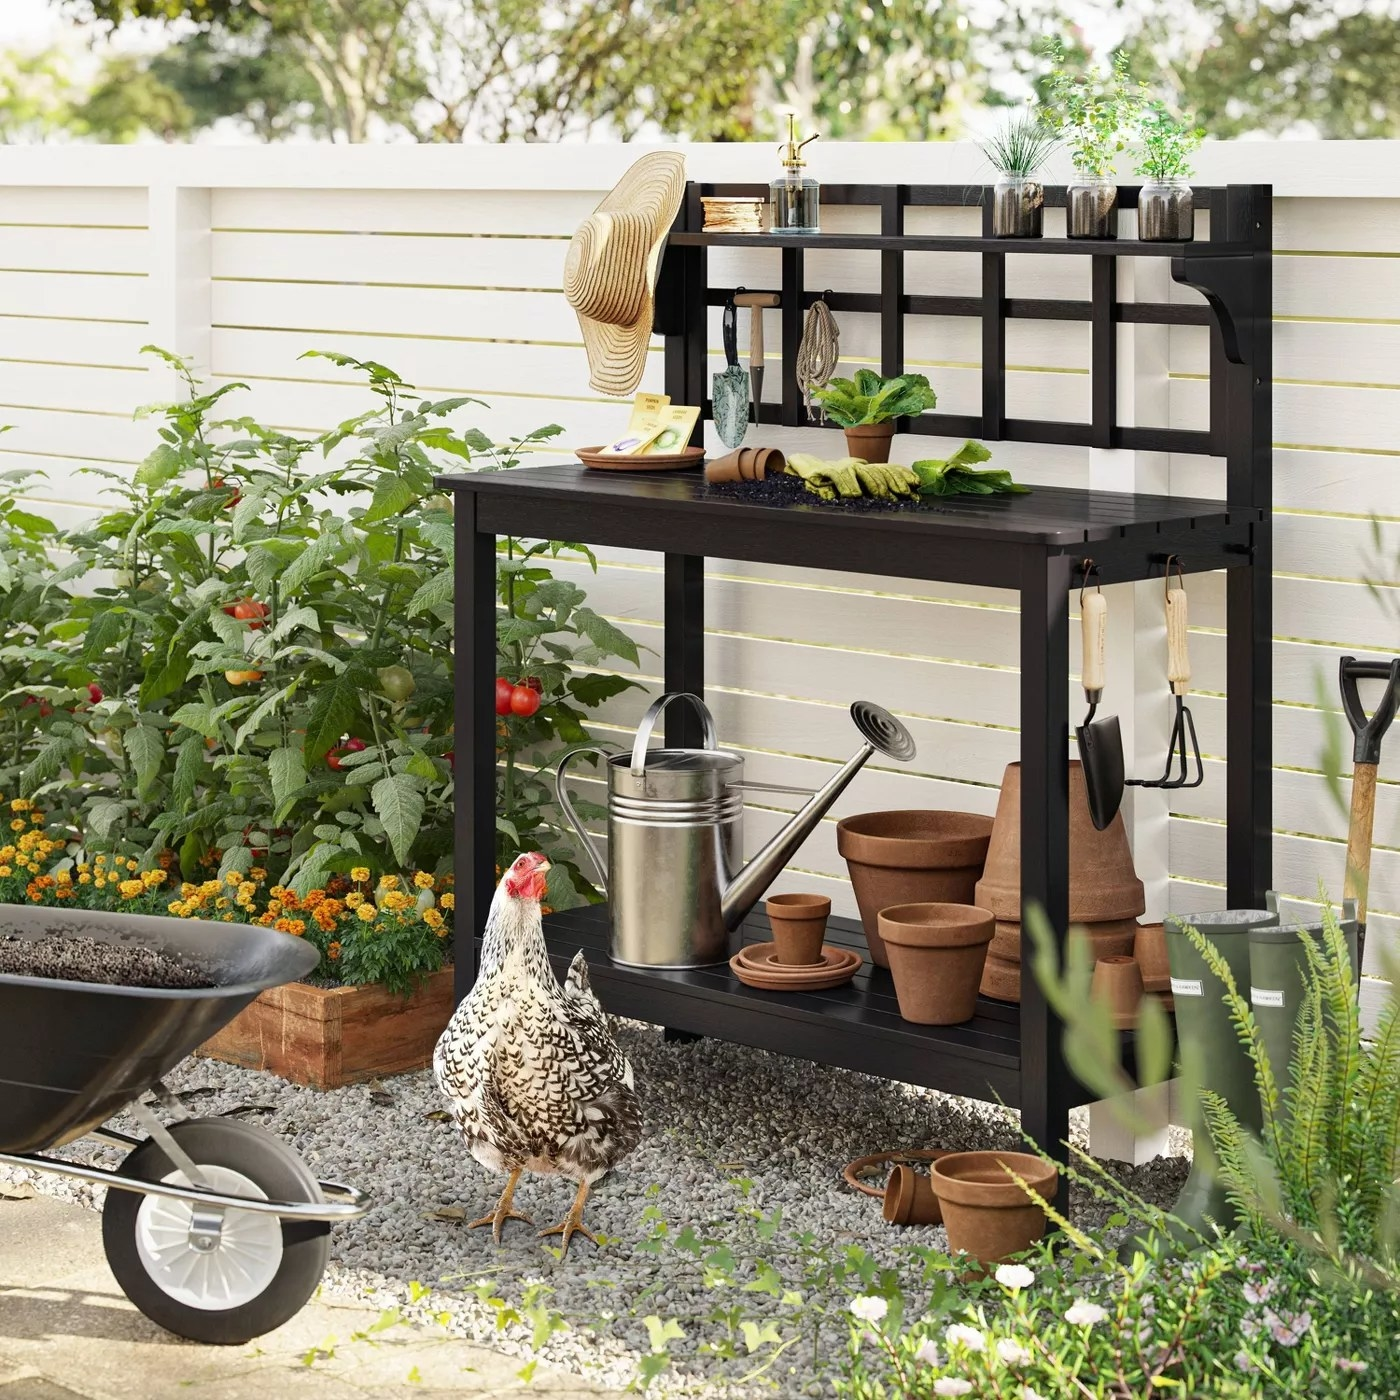 The blackened wood patio bench is outside and surrounded by gardening supplies, a chicken and fresh produce